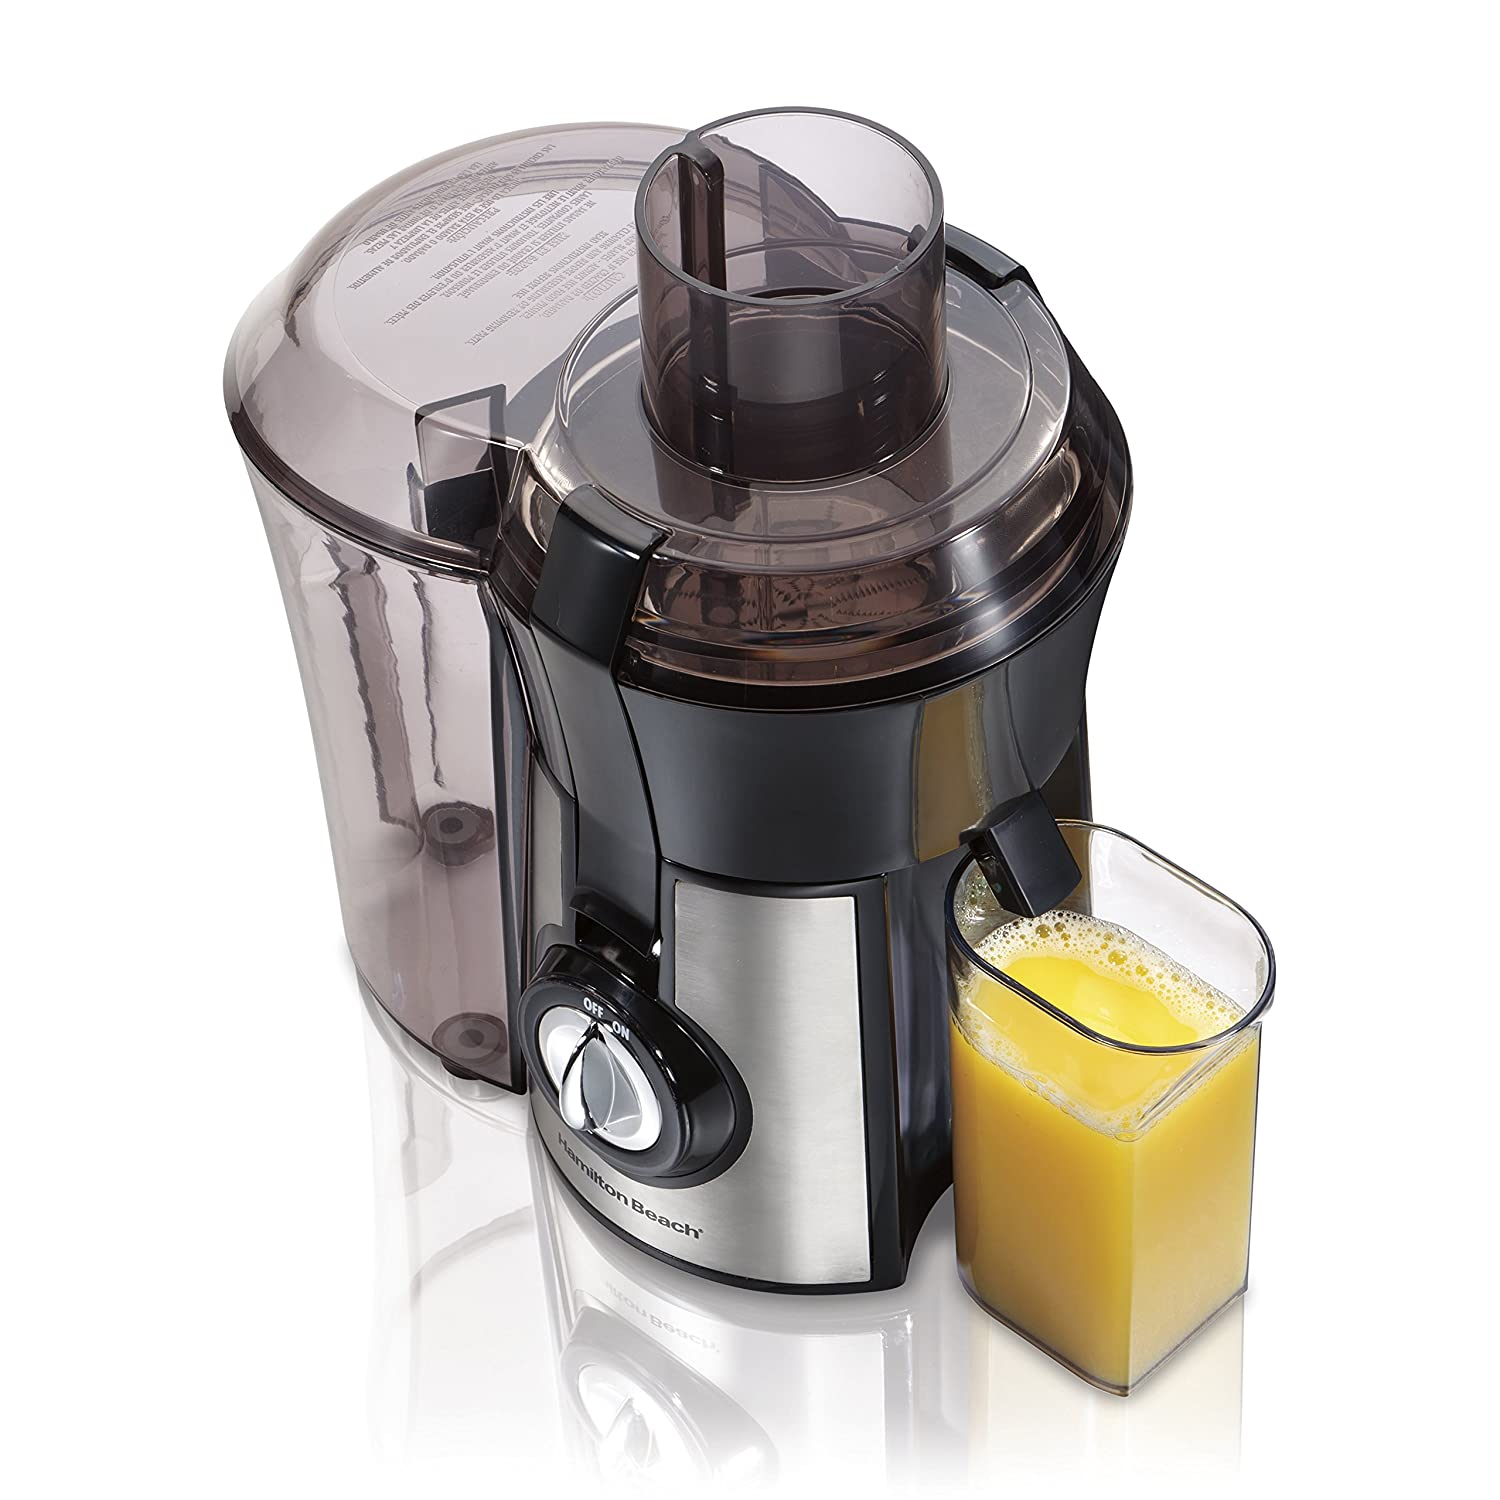 Hamilton-Beach 67608A Big Mouth Juice Extractor, Metallic Hamilton Beach